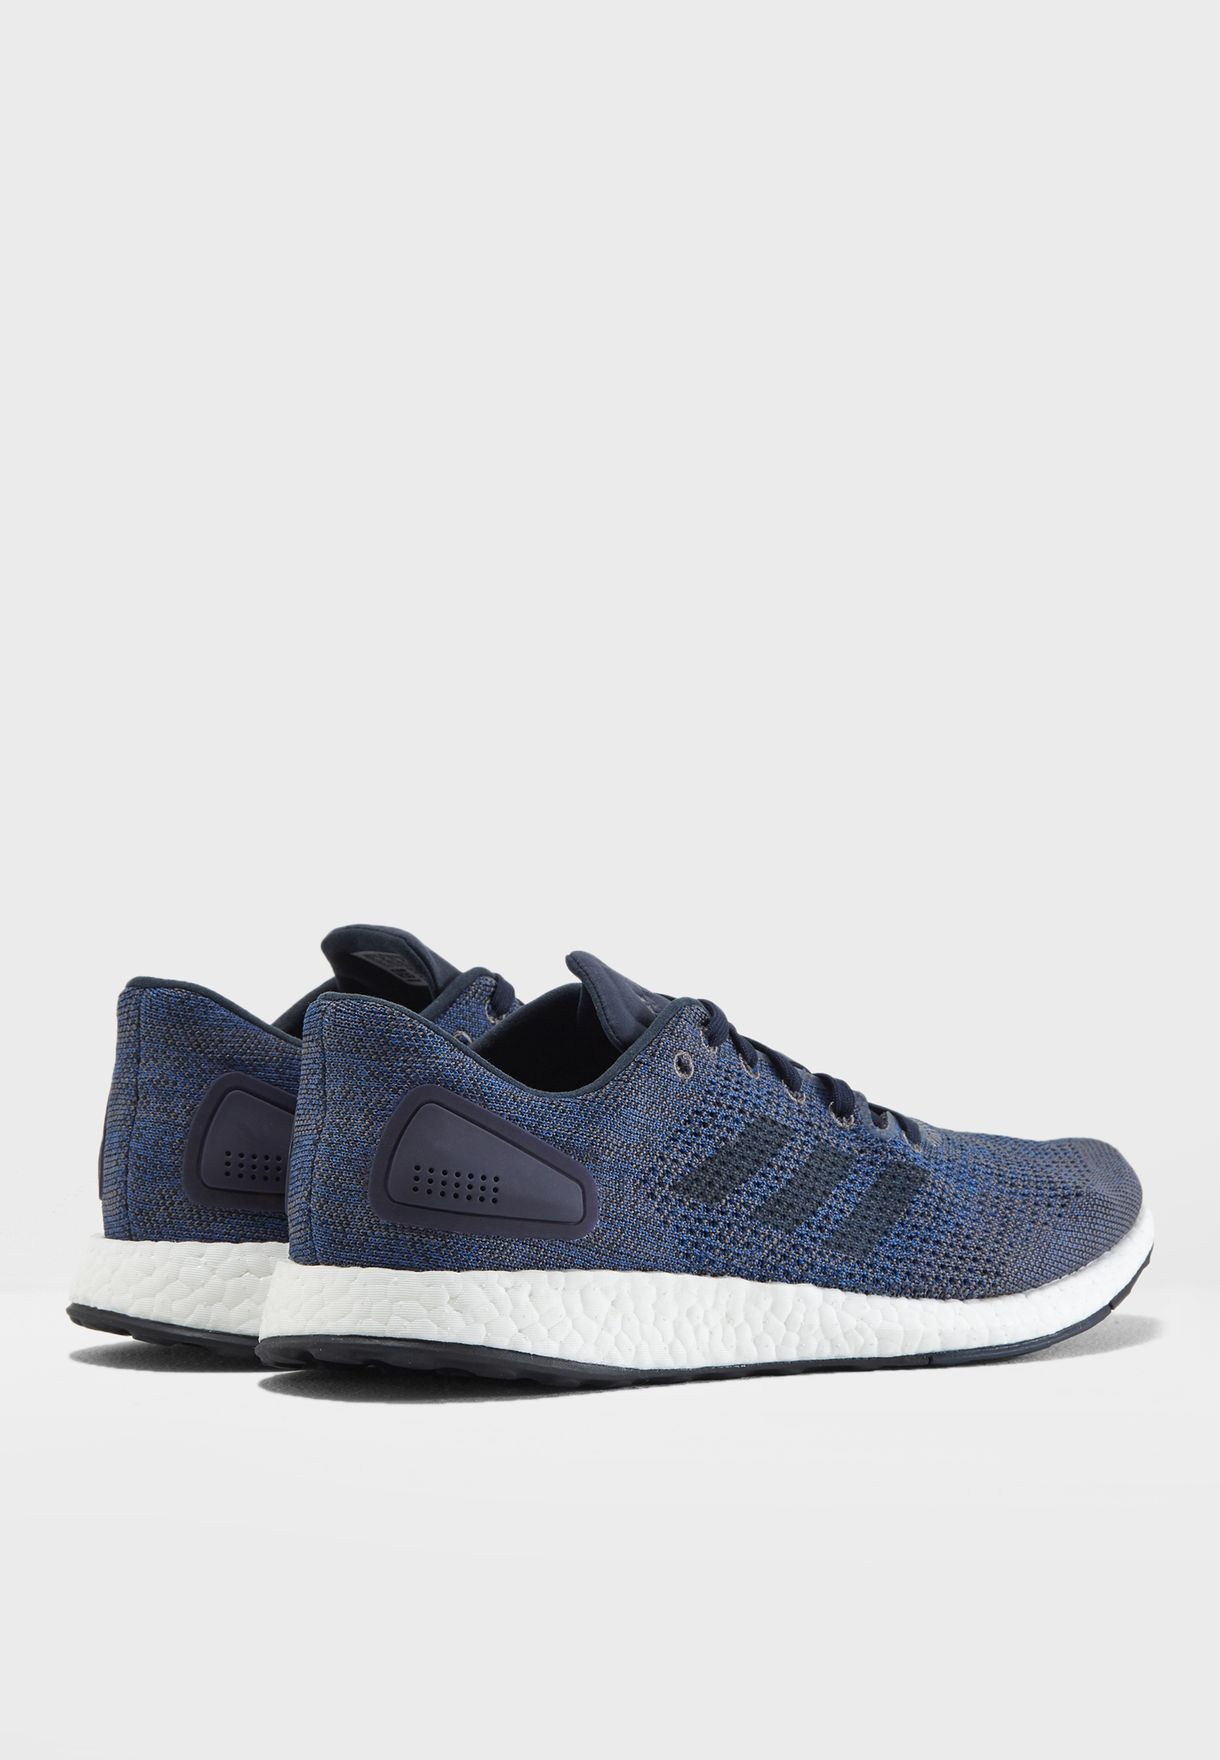 9c07c0bb49044 Shop adidas navy Pureboost DPR BB6293 for Men in Saudi - AD476SH62FUR